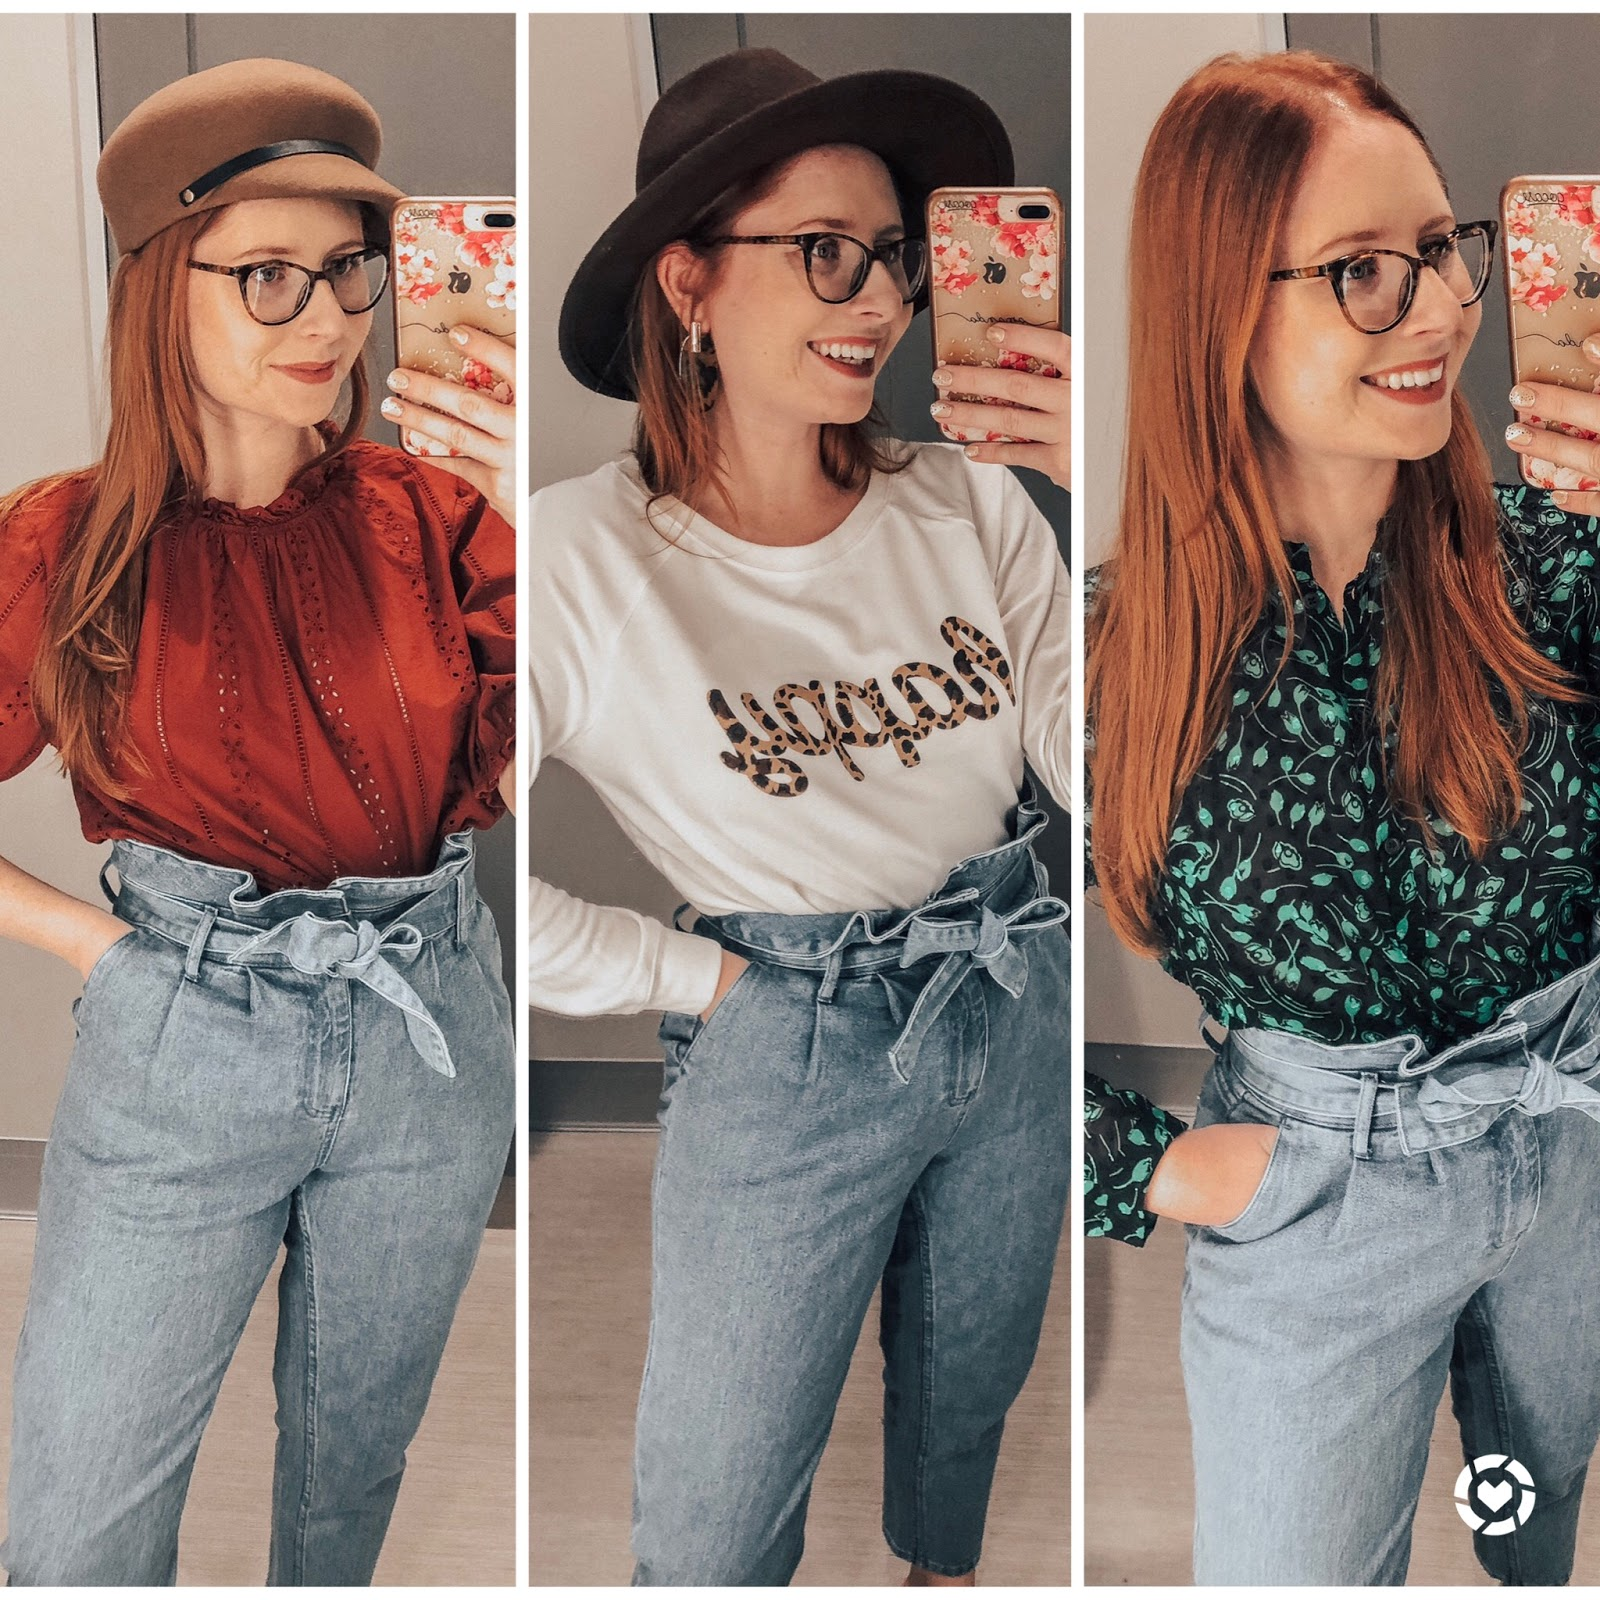 The Process Your Followers Use to Screenshot LIKEtoKNOW.it Images | Affordable by Amanda Target Try-On Session Fall 2019 Using Liketoknow.it App